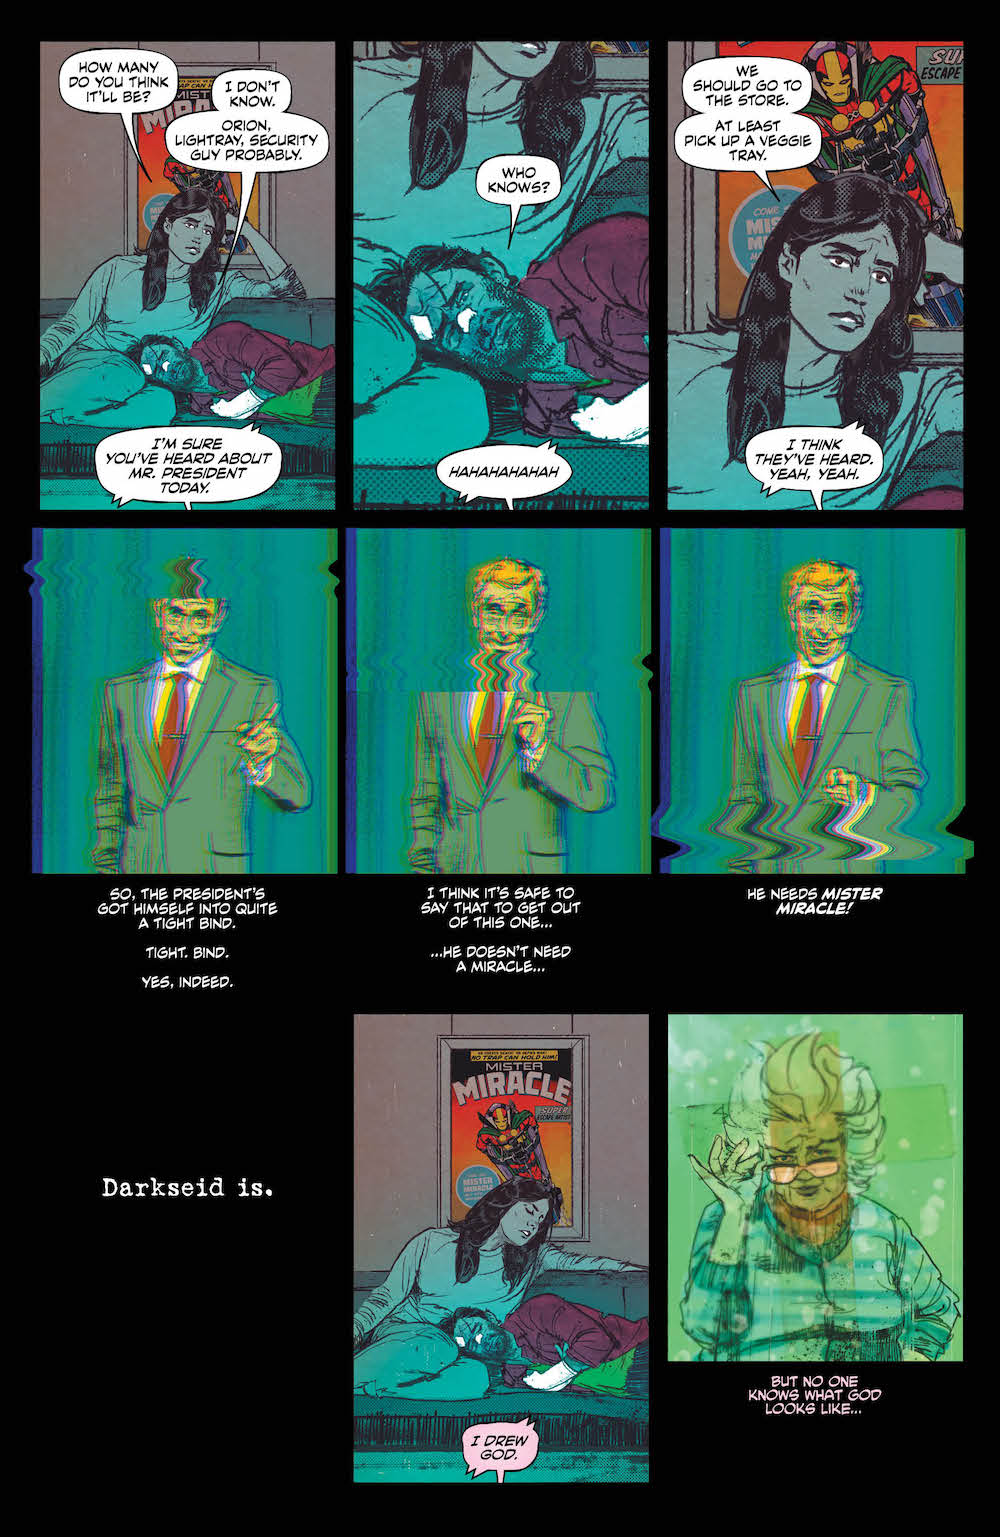 Gerards, King Mister Miracle